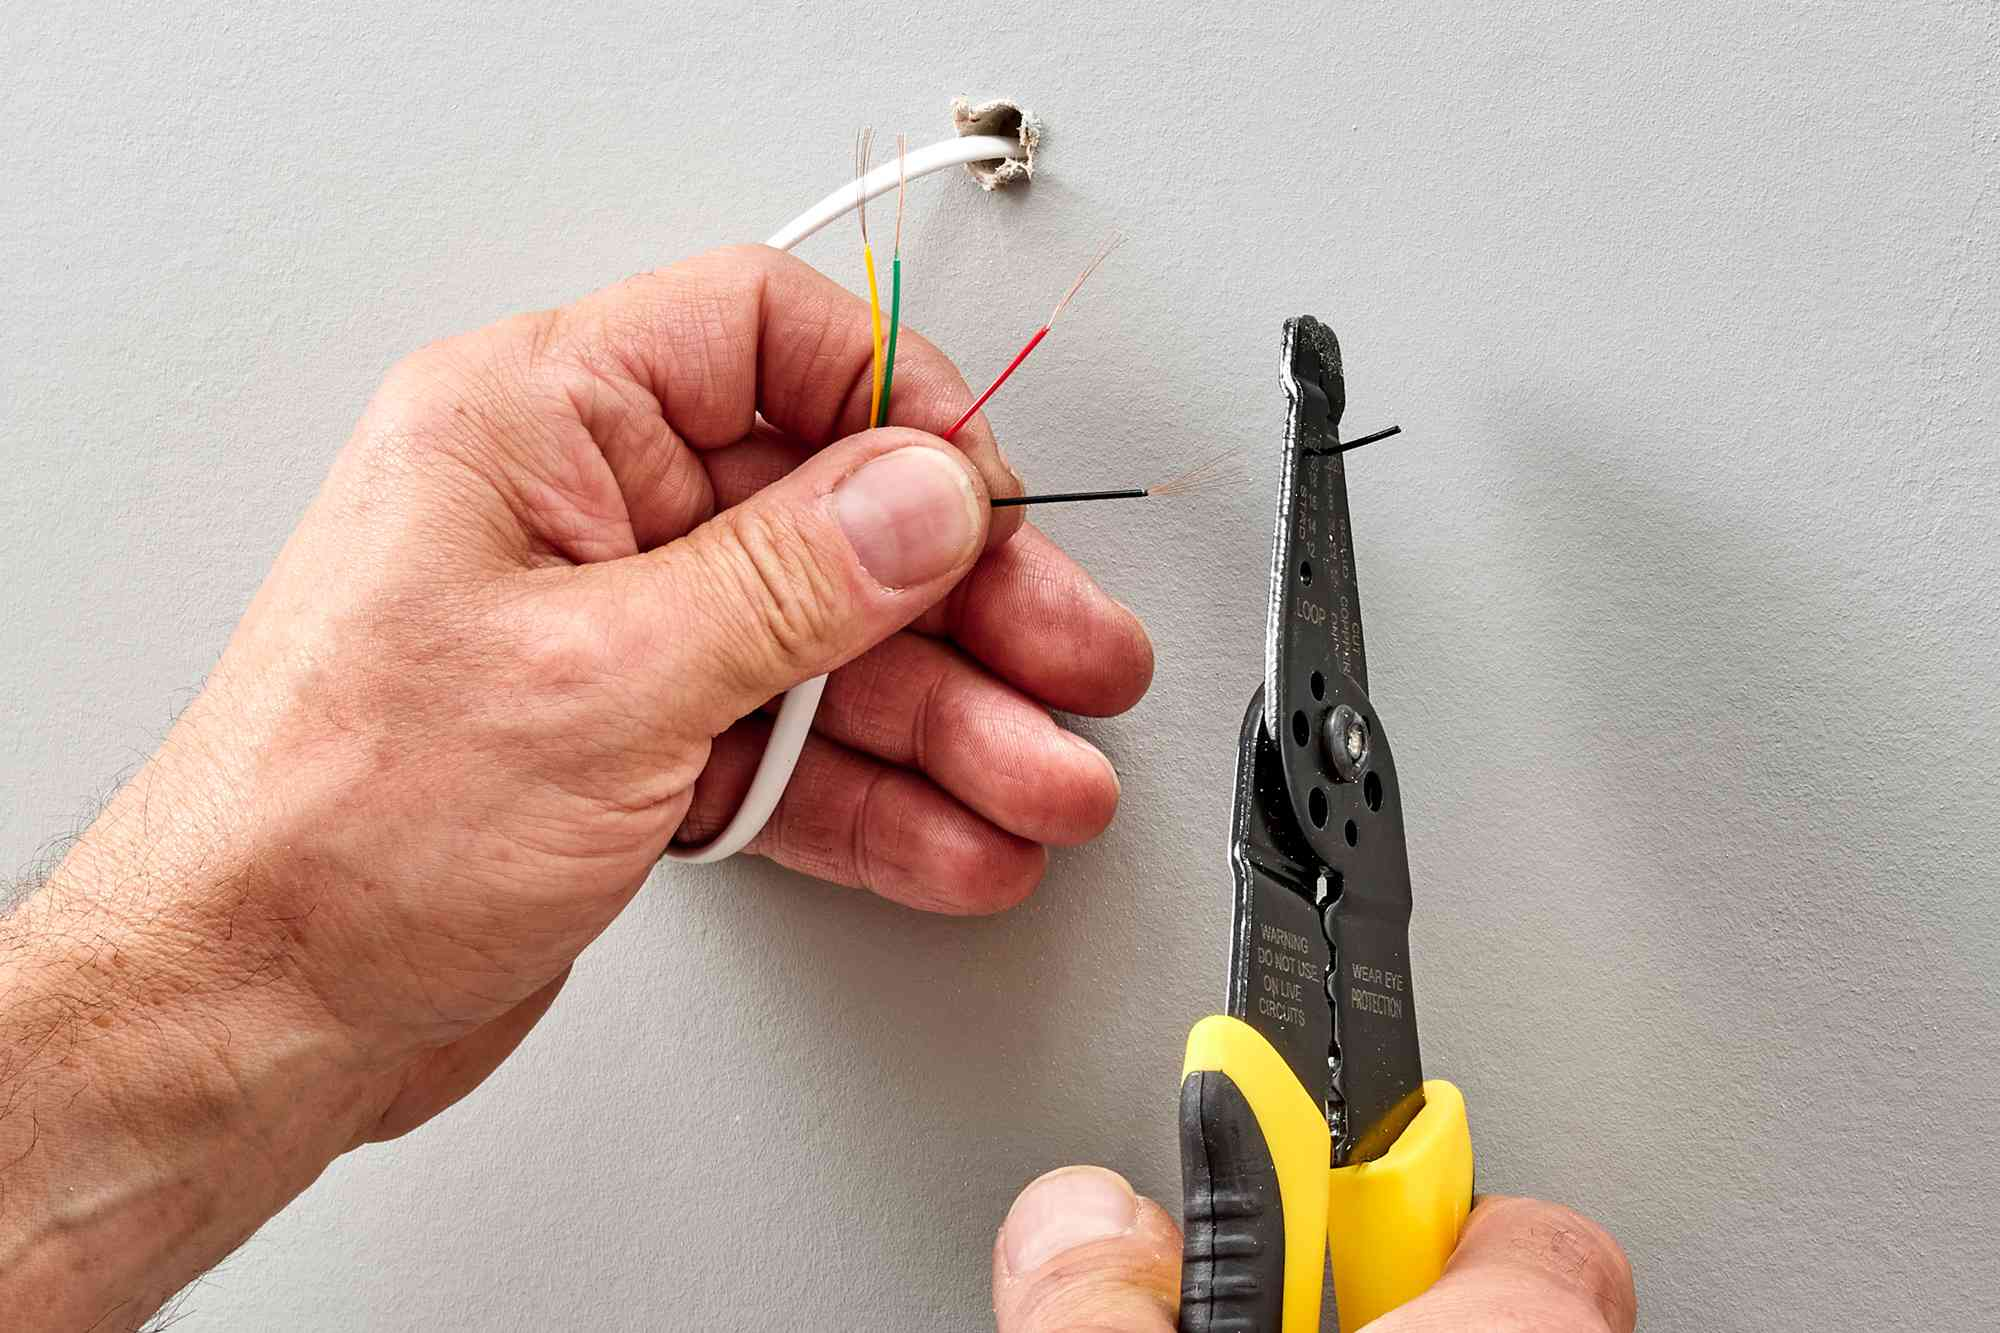 Individual wires untwisted and insulation stripped with wire strippers